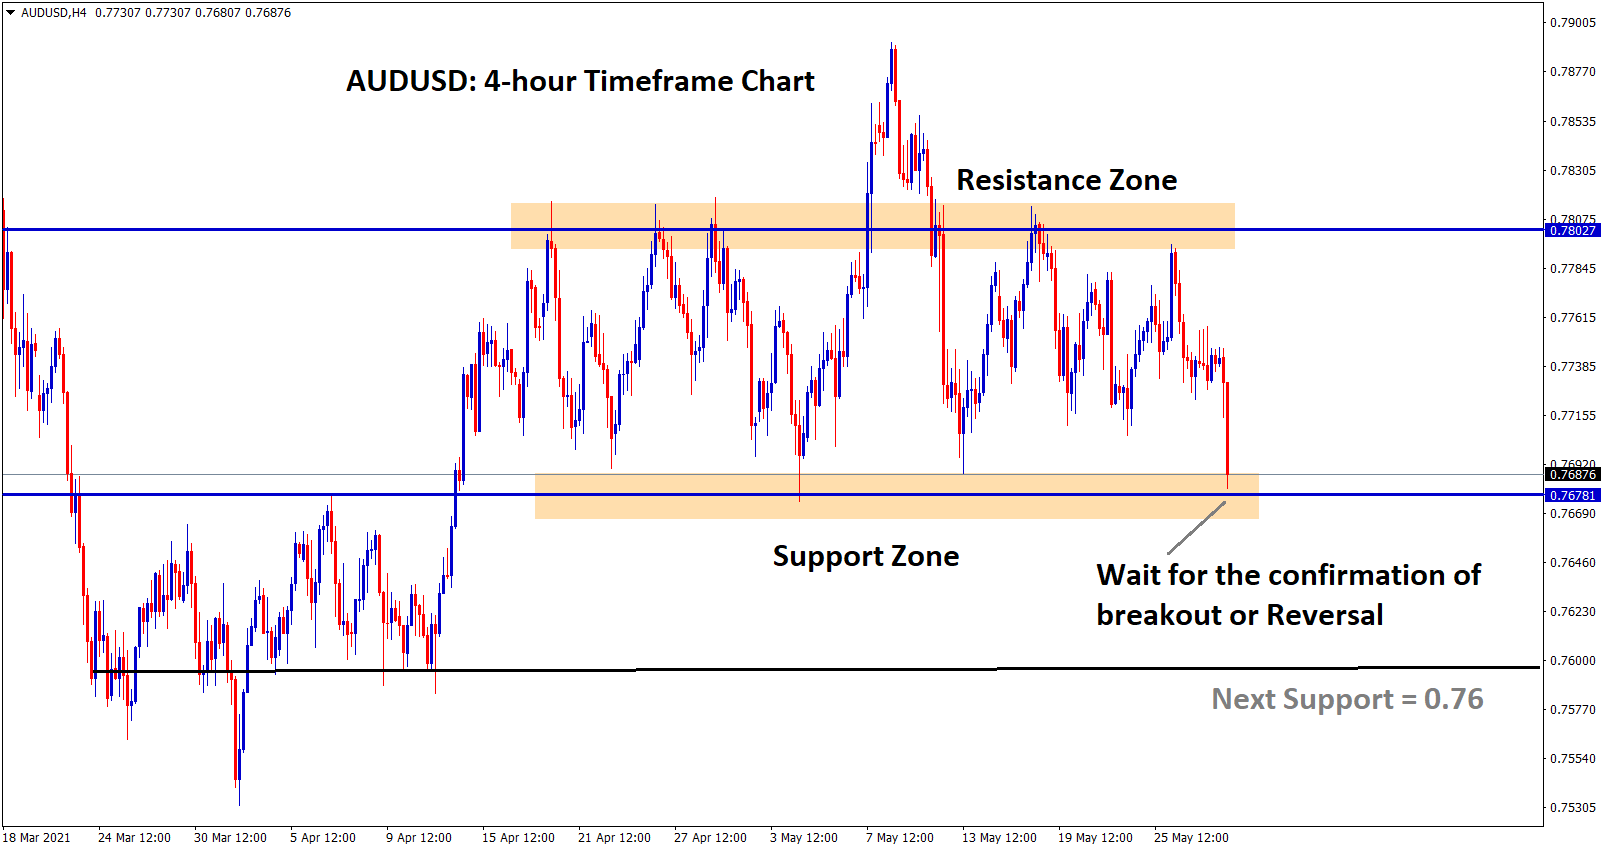 AUDUSD at the support zone wait for breakout or reversal